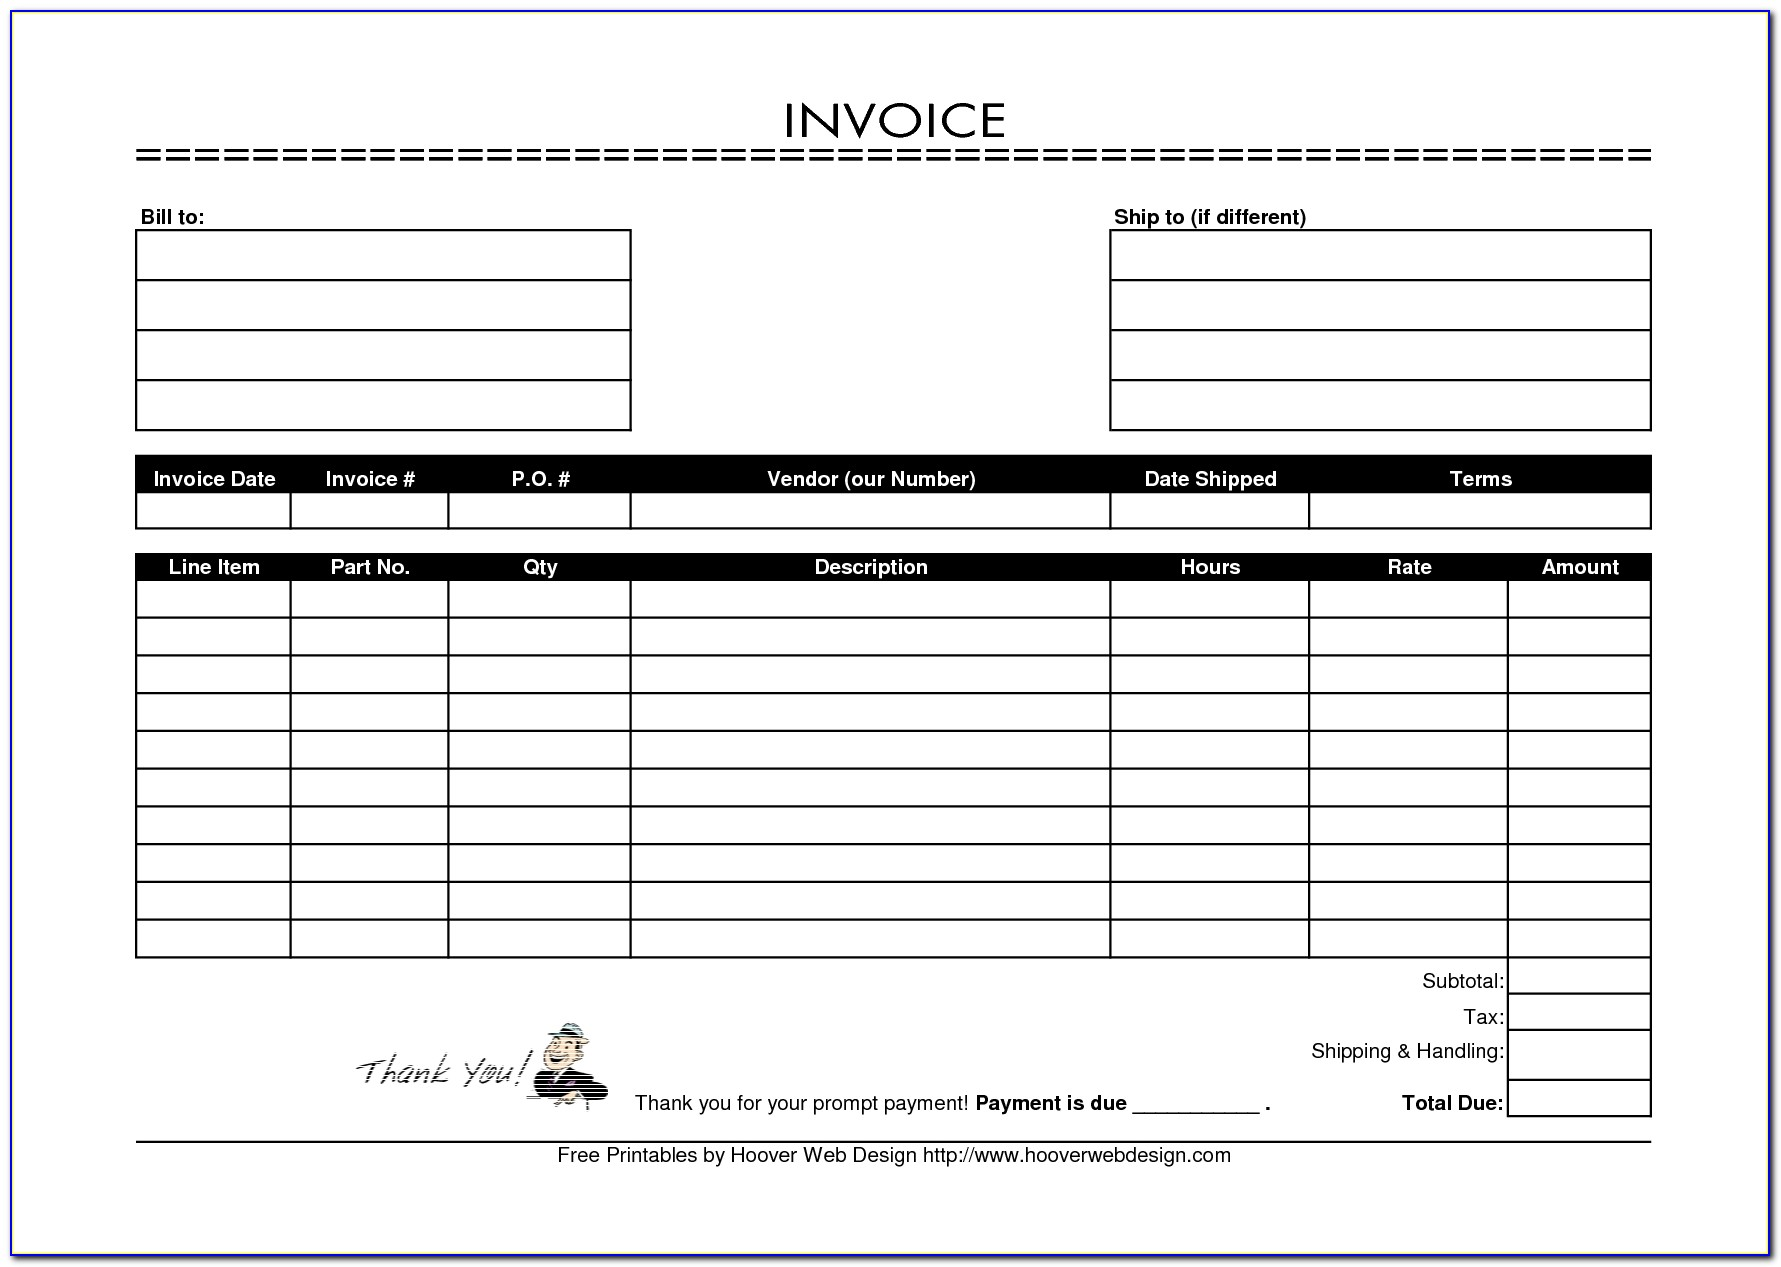 Free Printable Invoice Template 9 Examples Of Printable Invoice Template And Steps To Create 1754 X 1240